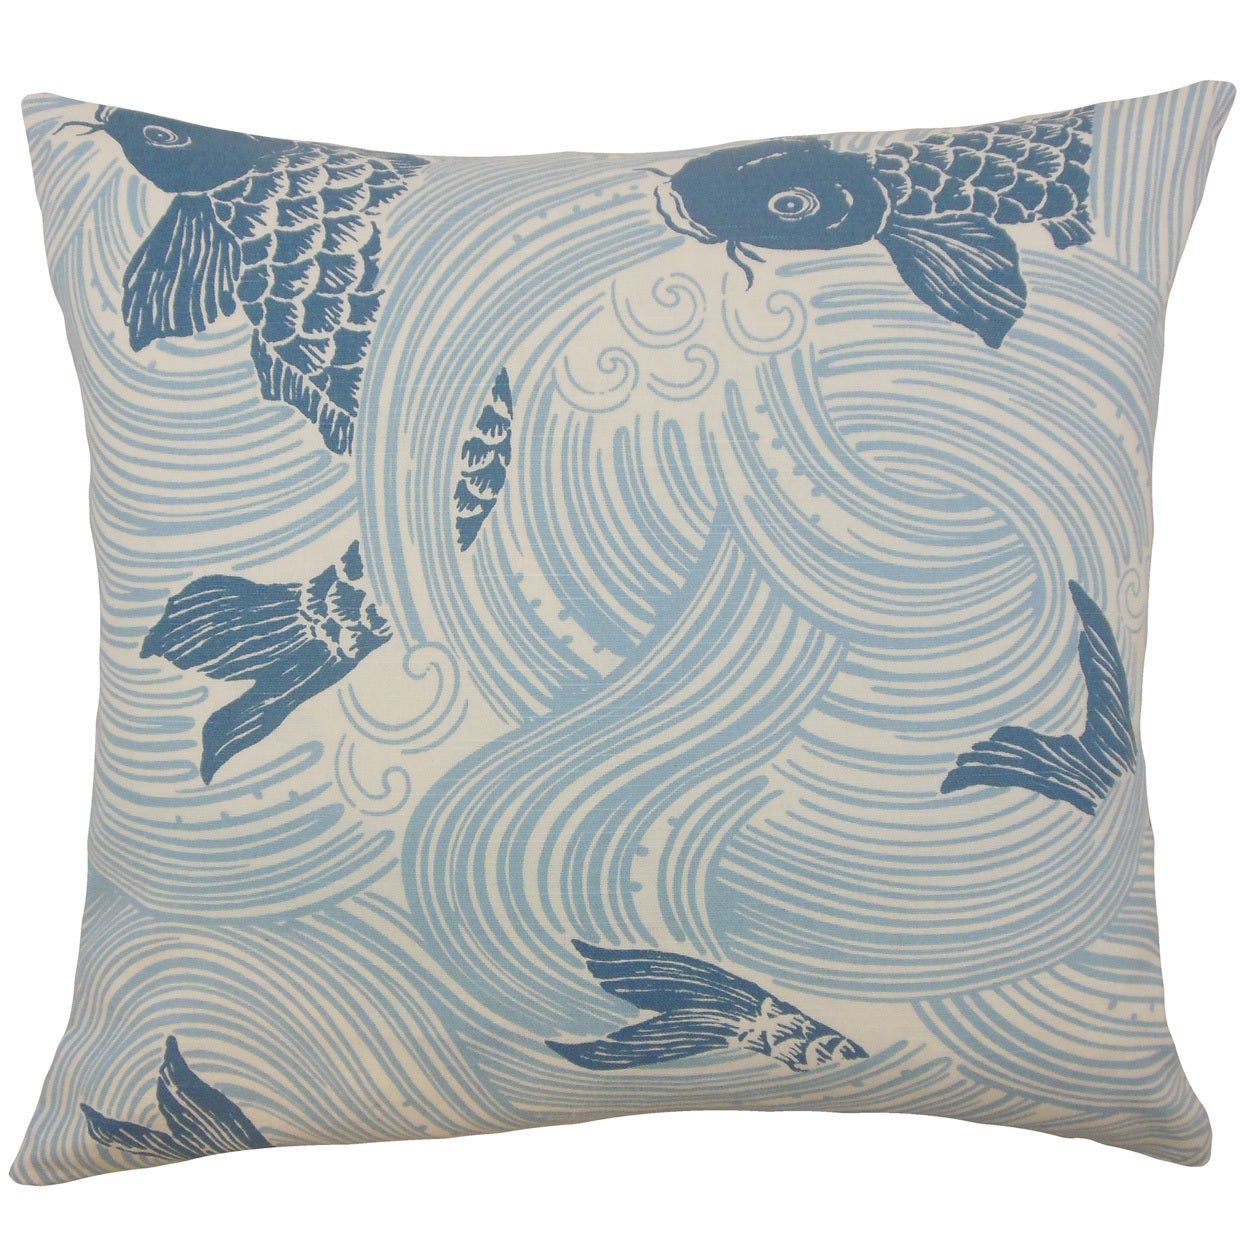 Ailies Multi Blue Fish Down and Feather Filled 18-inch Throw Pillow (Size)